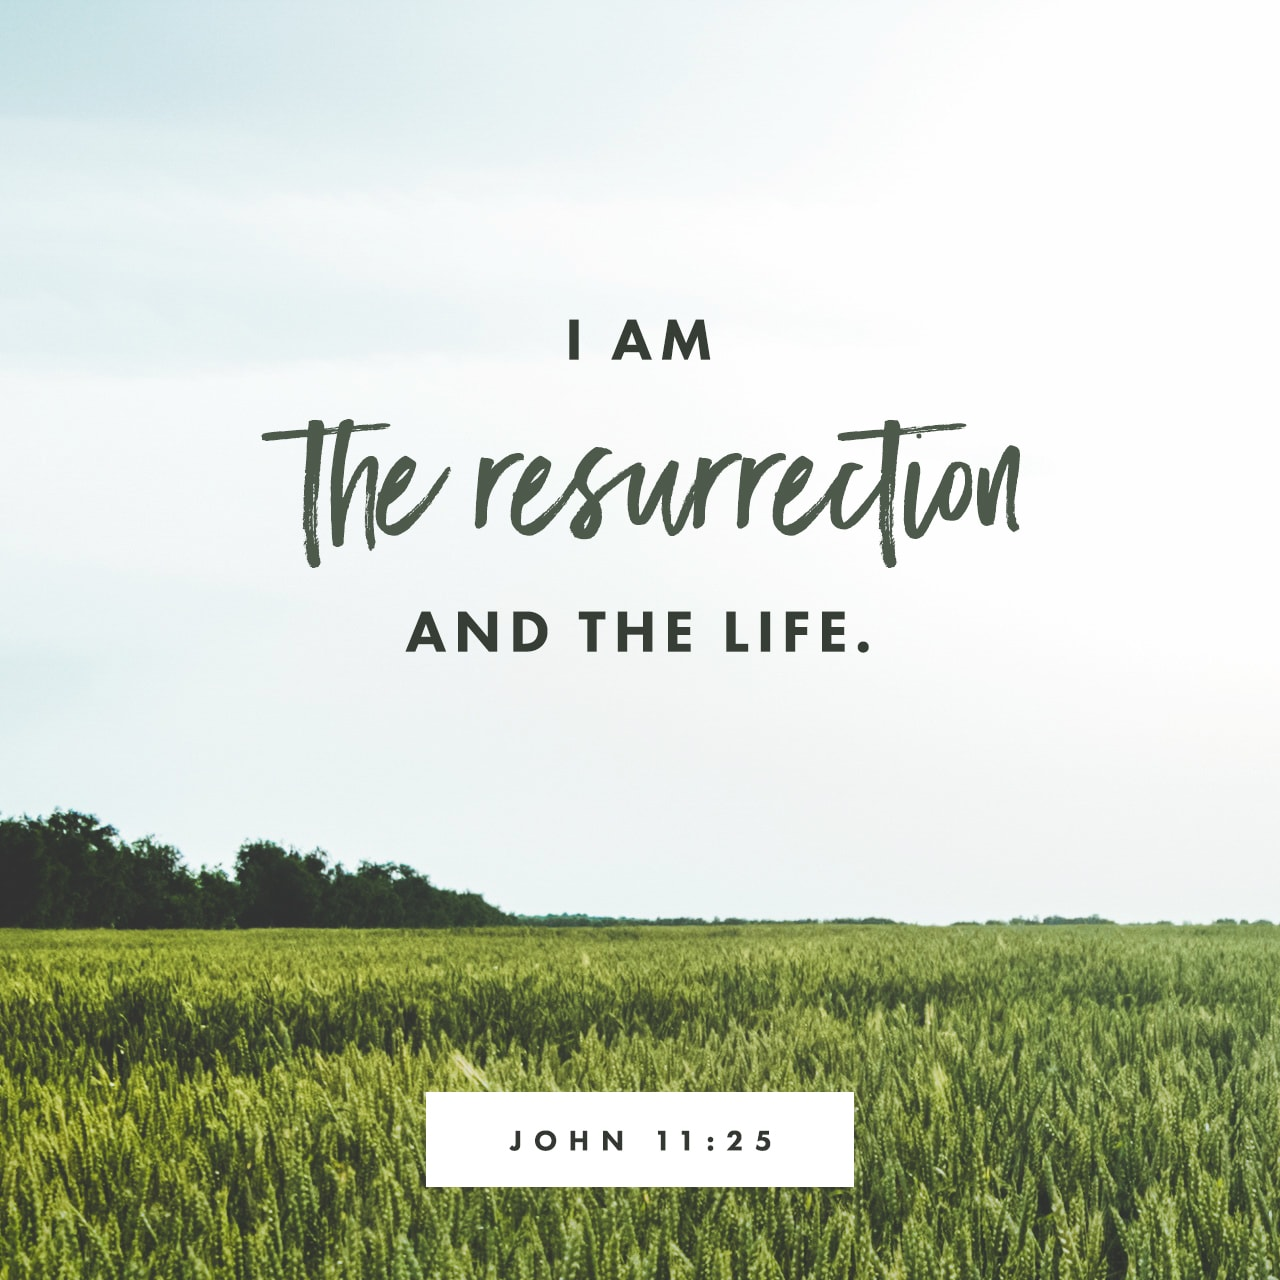 Verse Image: John 11:25-26, New International Version